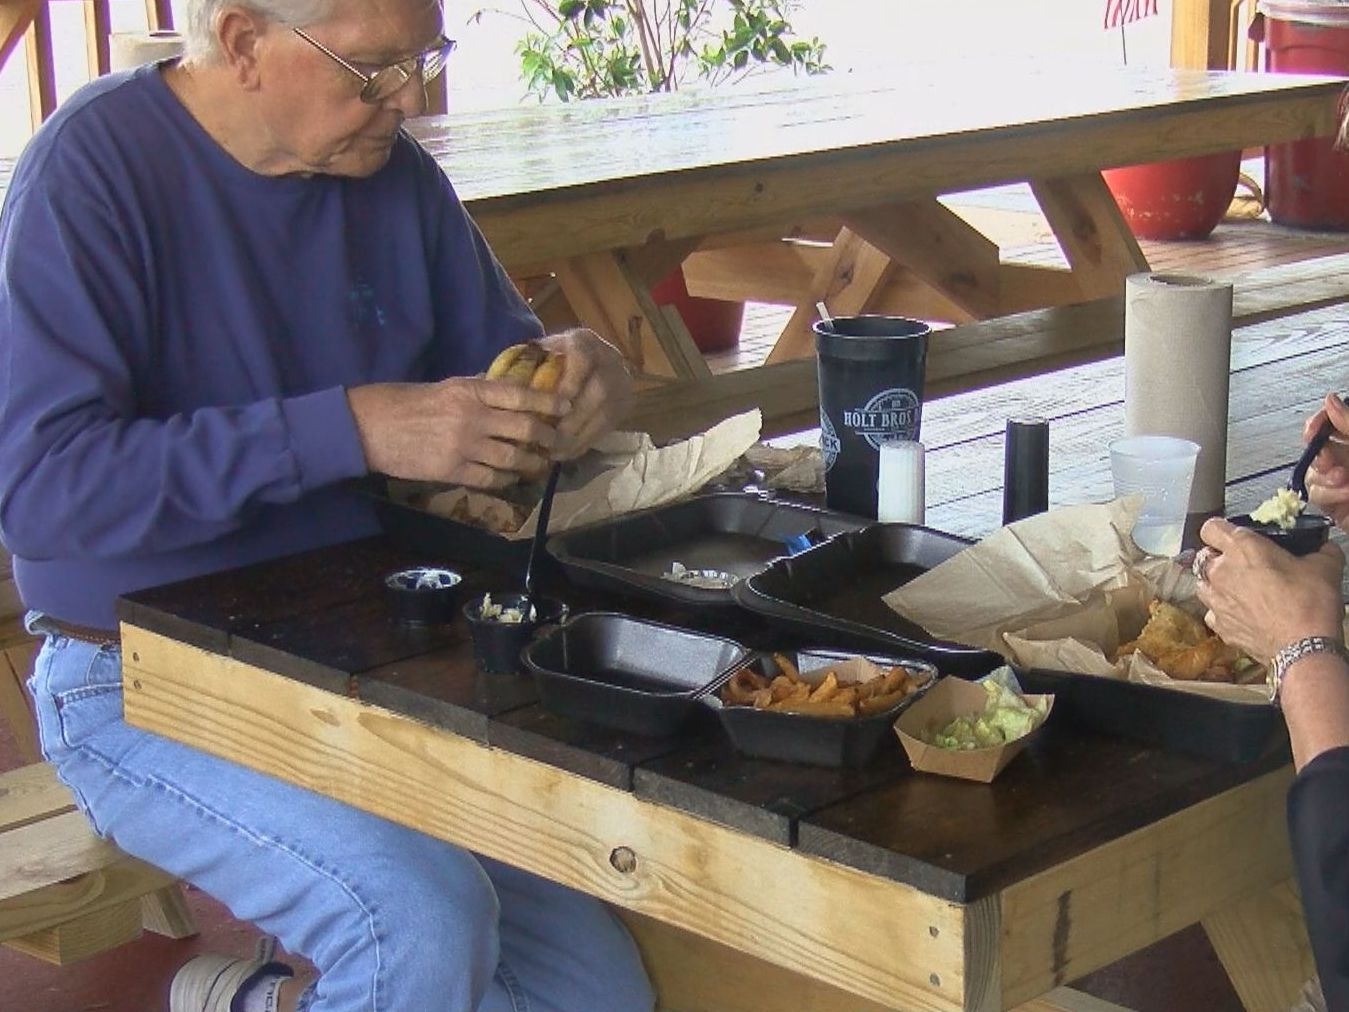 'I'm very thankful': Florence restaurant owner amazed by community during outdoor dining reopening